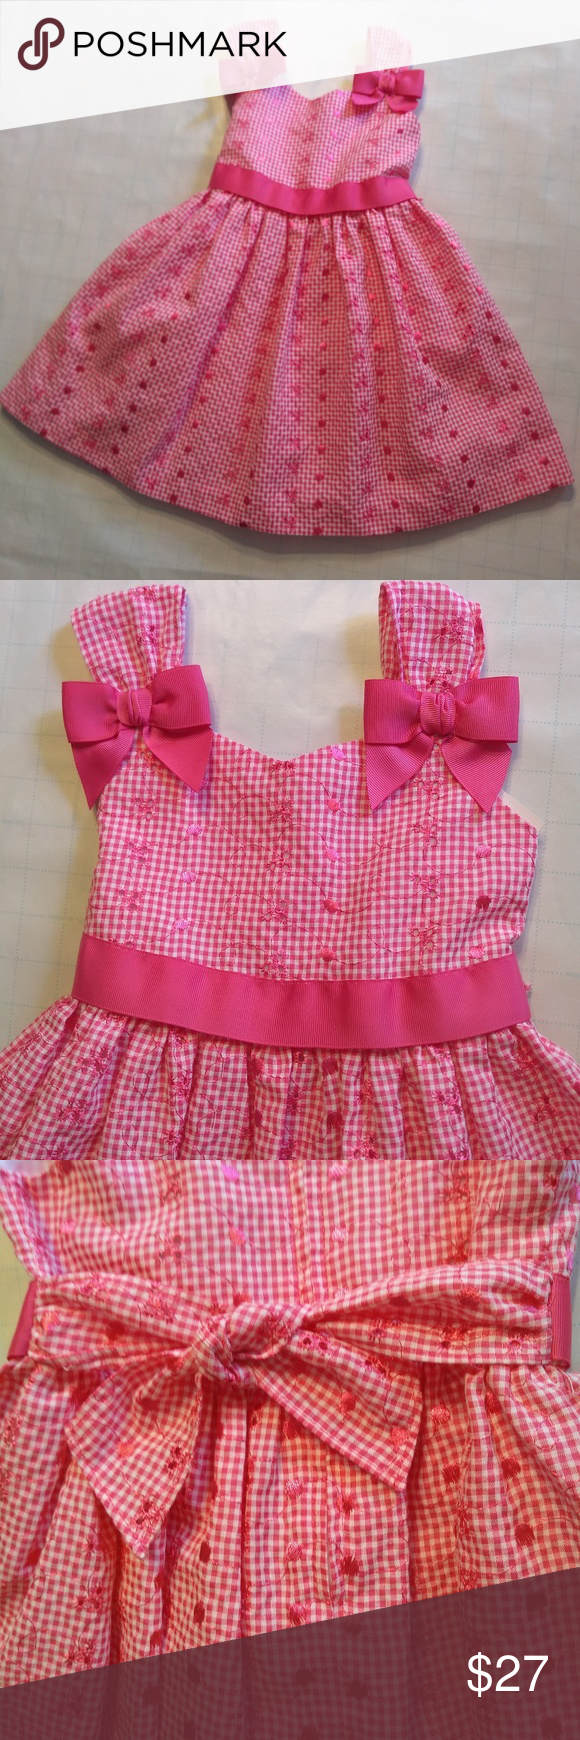 Beautiful Bonnie Jean Pink Dress With Bows 4t Pink And White Checks With Darker Pink Details Small Cutouts Pink Bows And Dress With Bow Clothes Design Dresses [ 1740 x 580 Pixel ]